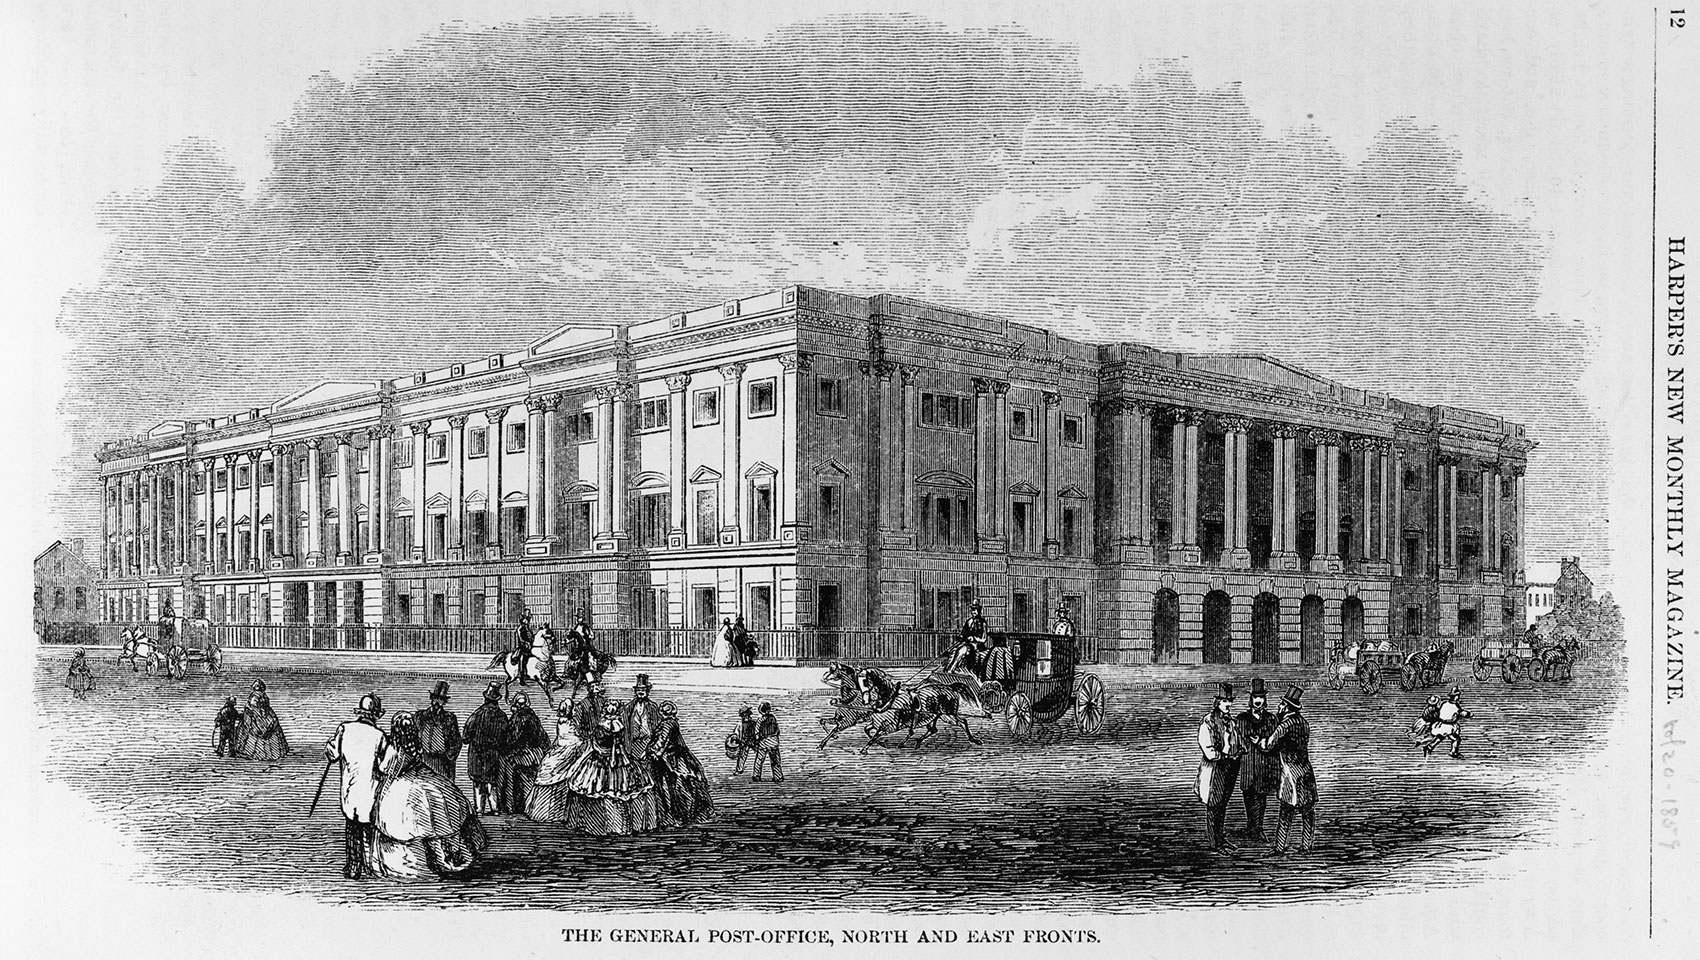 1859 engraving of Washington DC's General Post Office from Harper's New Monthly Magazine